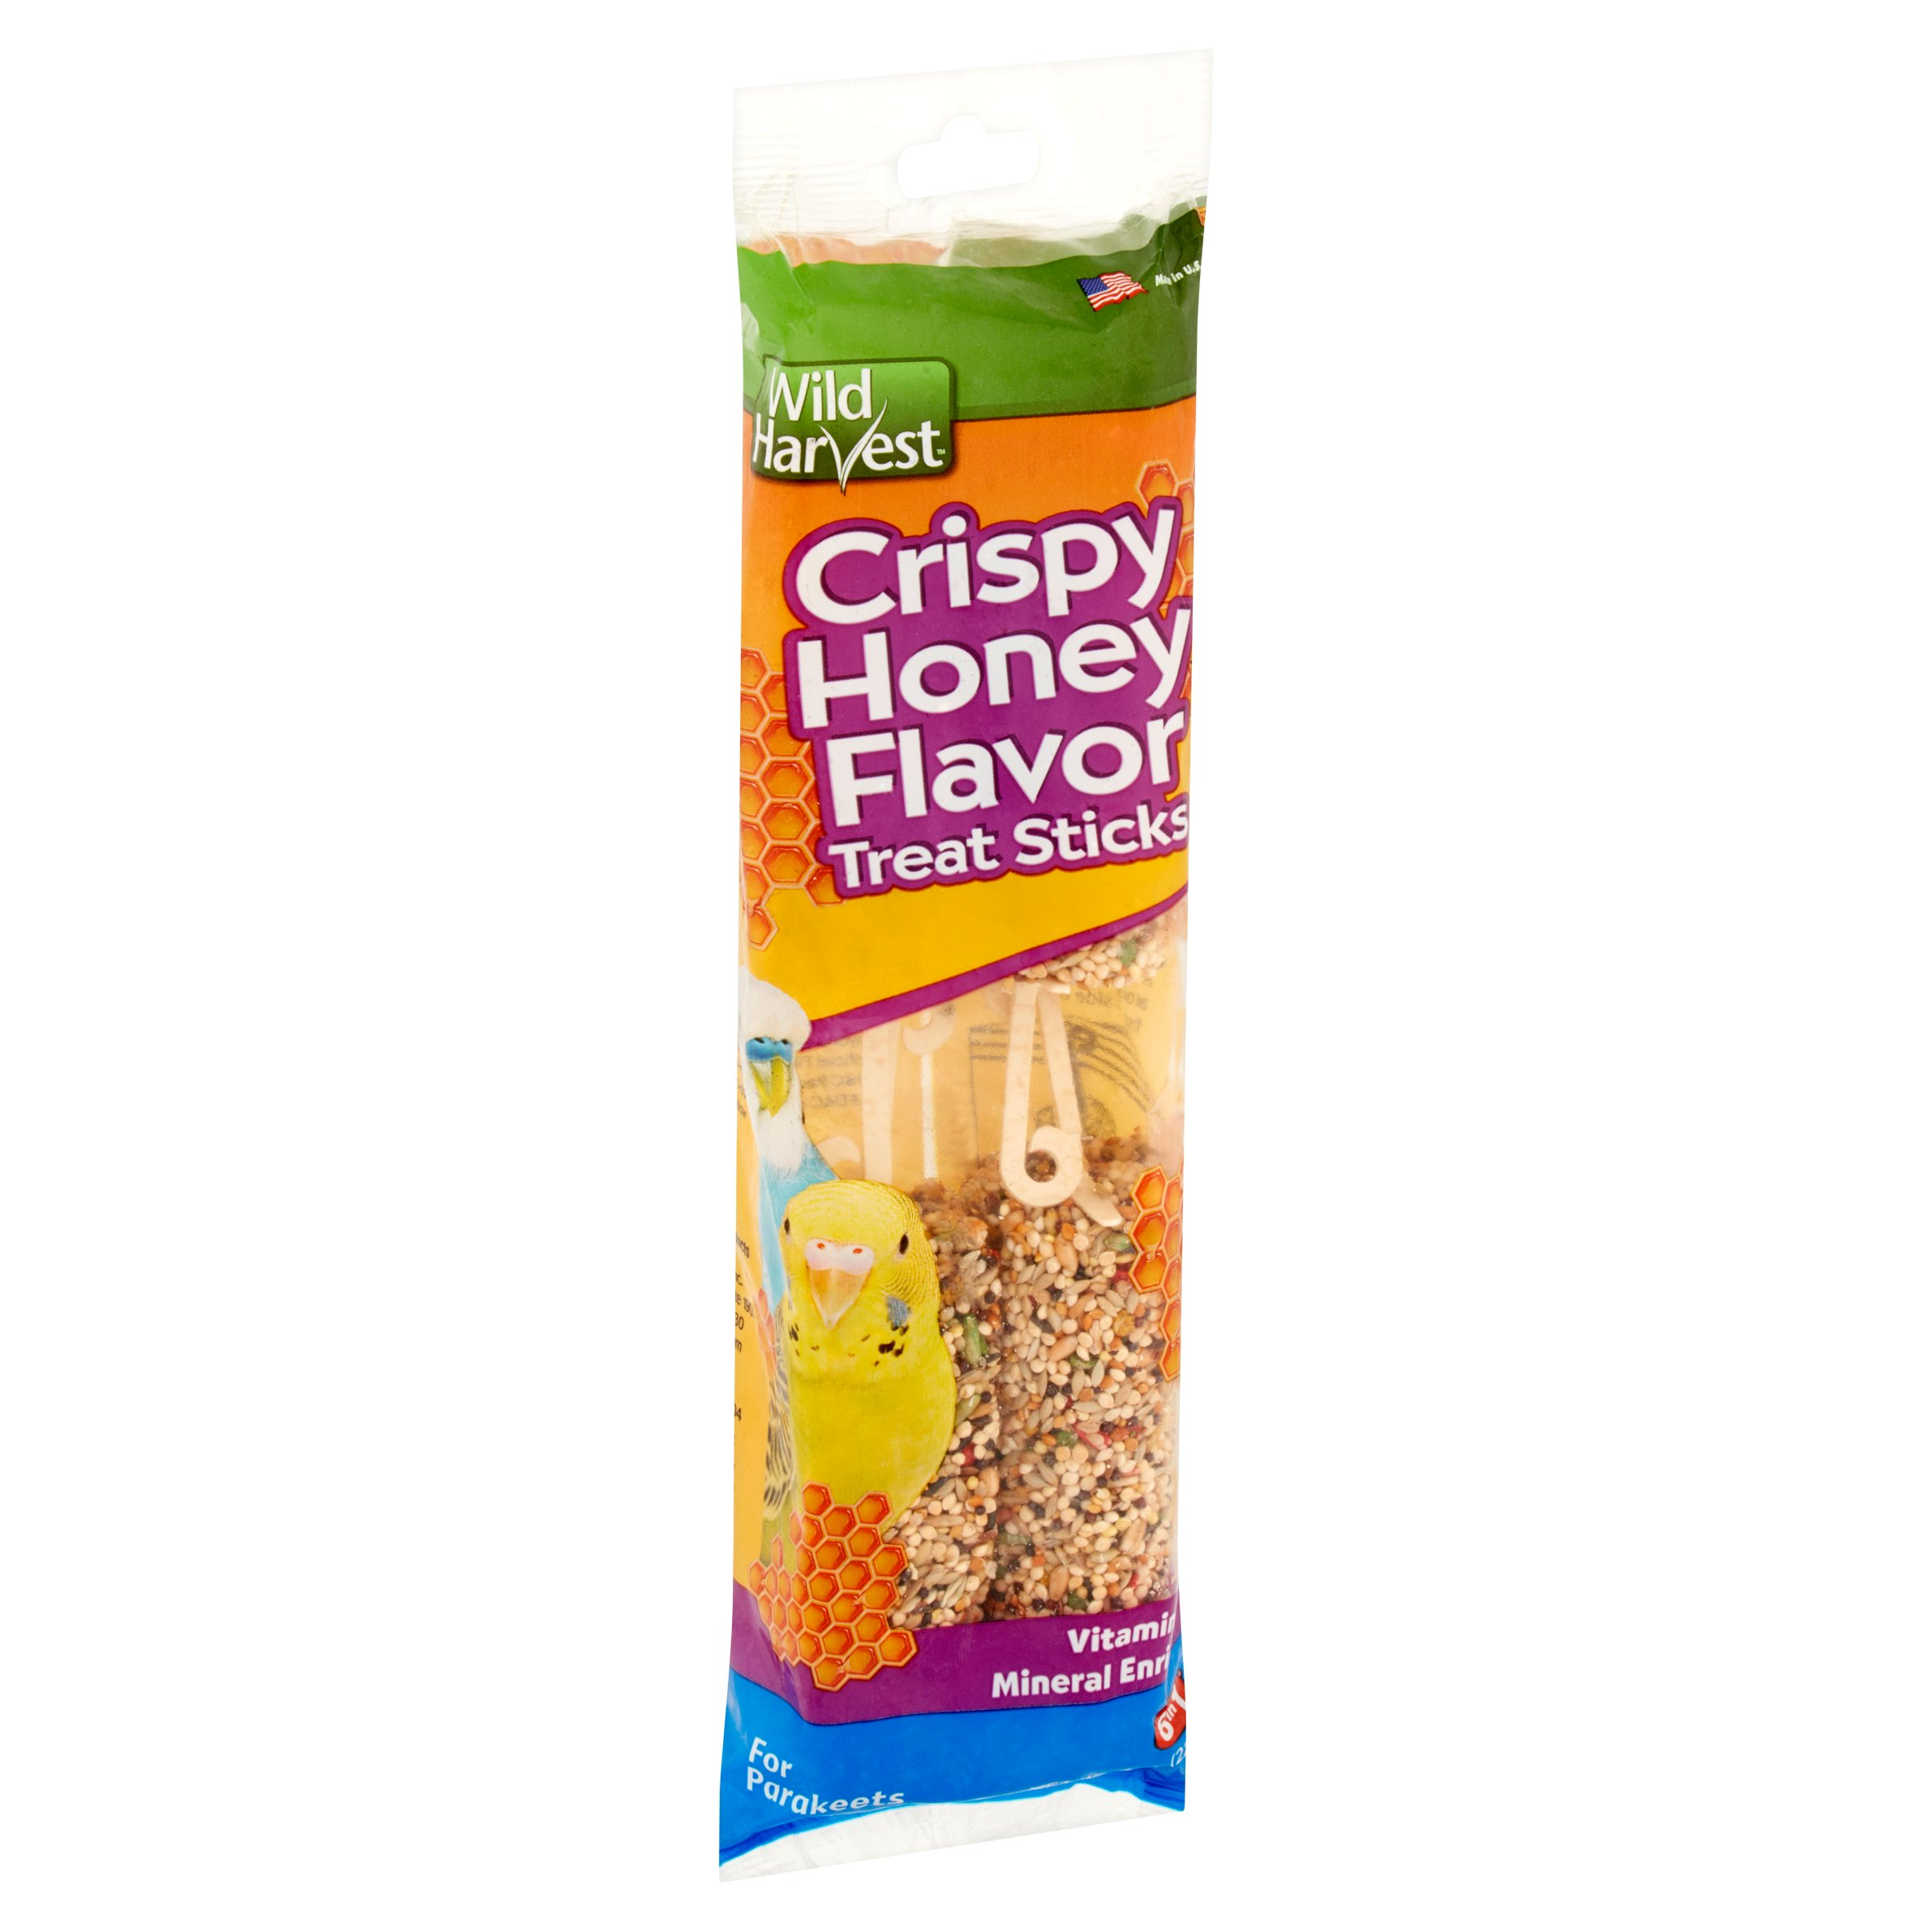 Wild Harvest Crispy Honey Flavor Treat Sticks for Parakeets, 8 oz